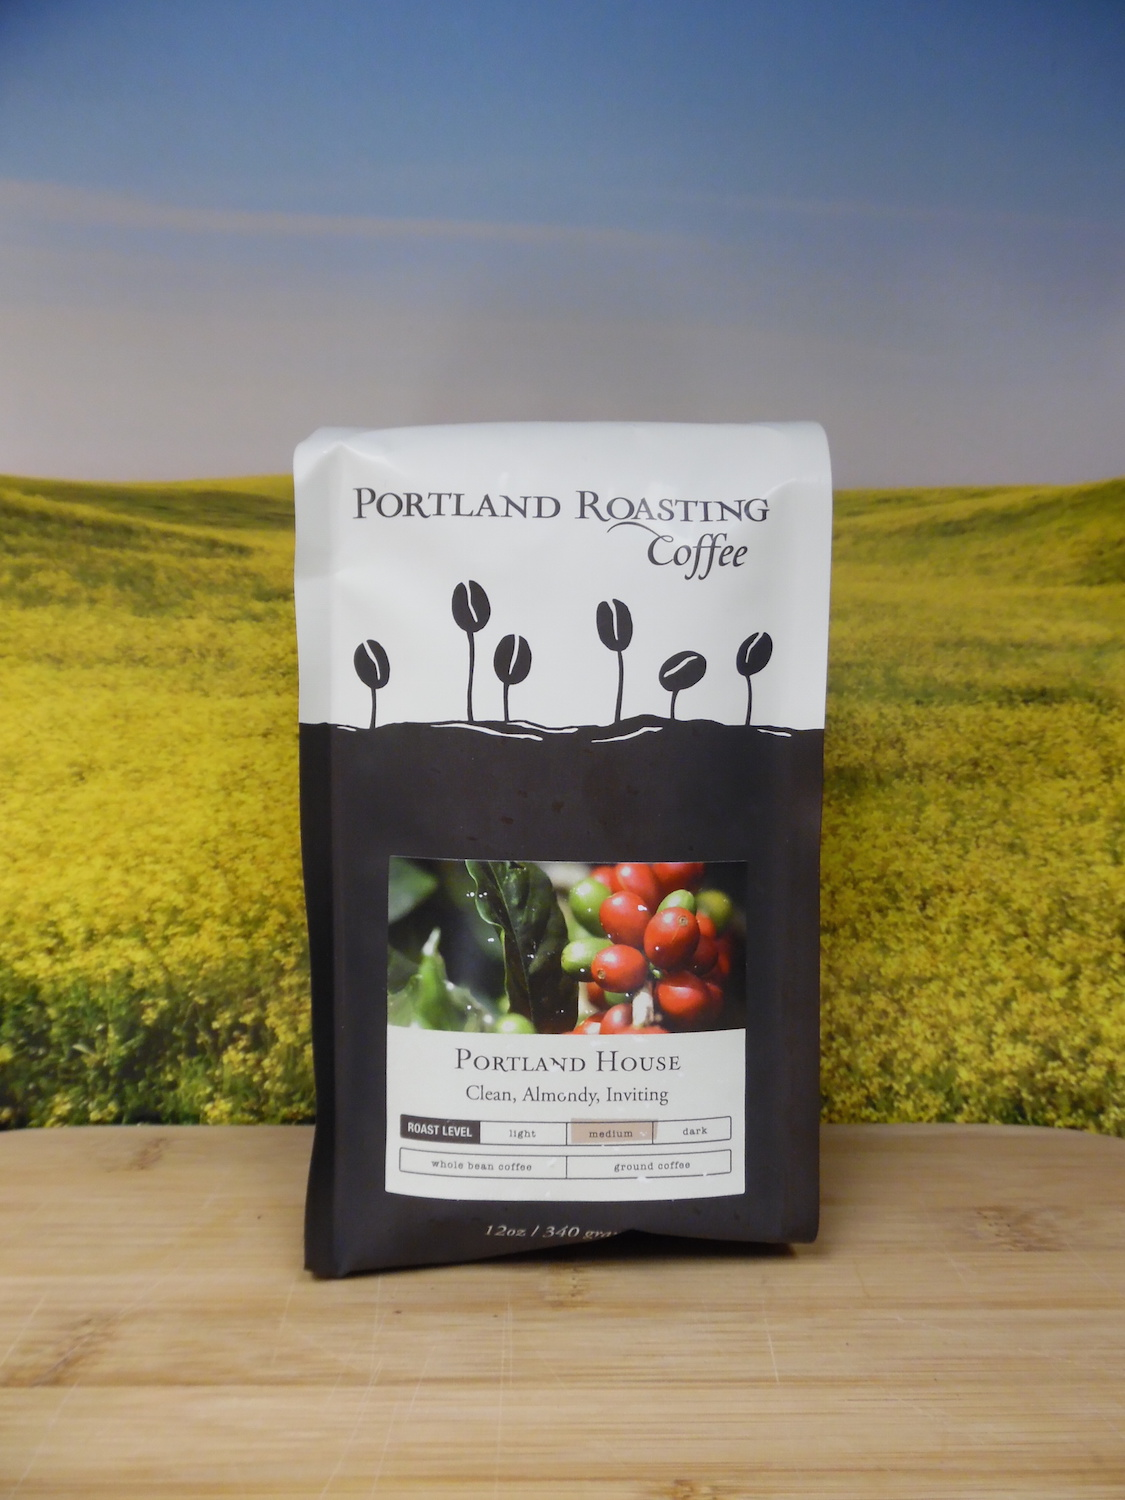 Portland House, a blend by Portland Roasting Coffee